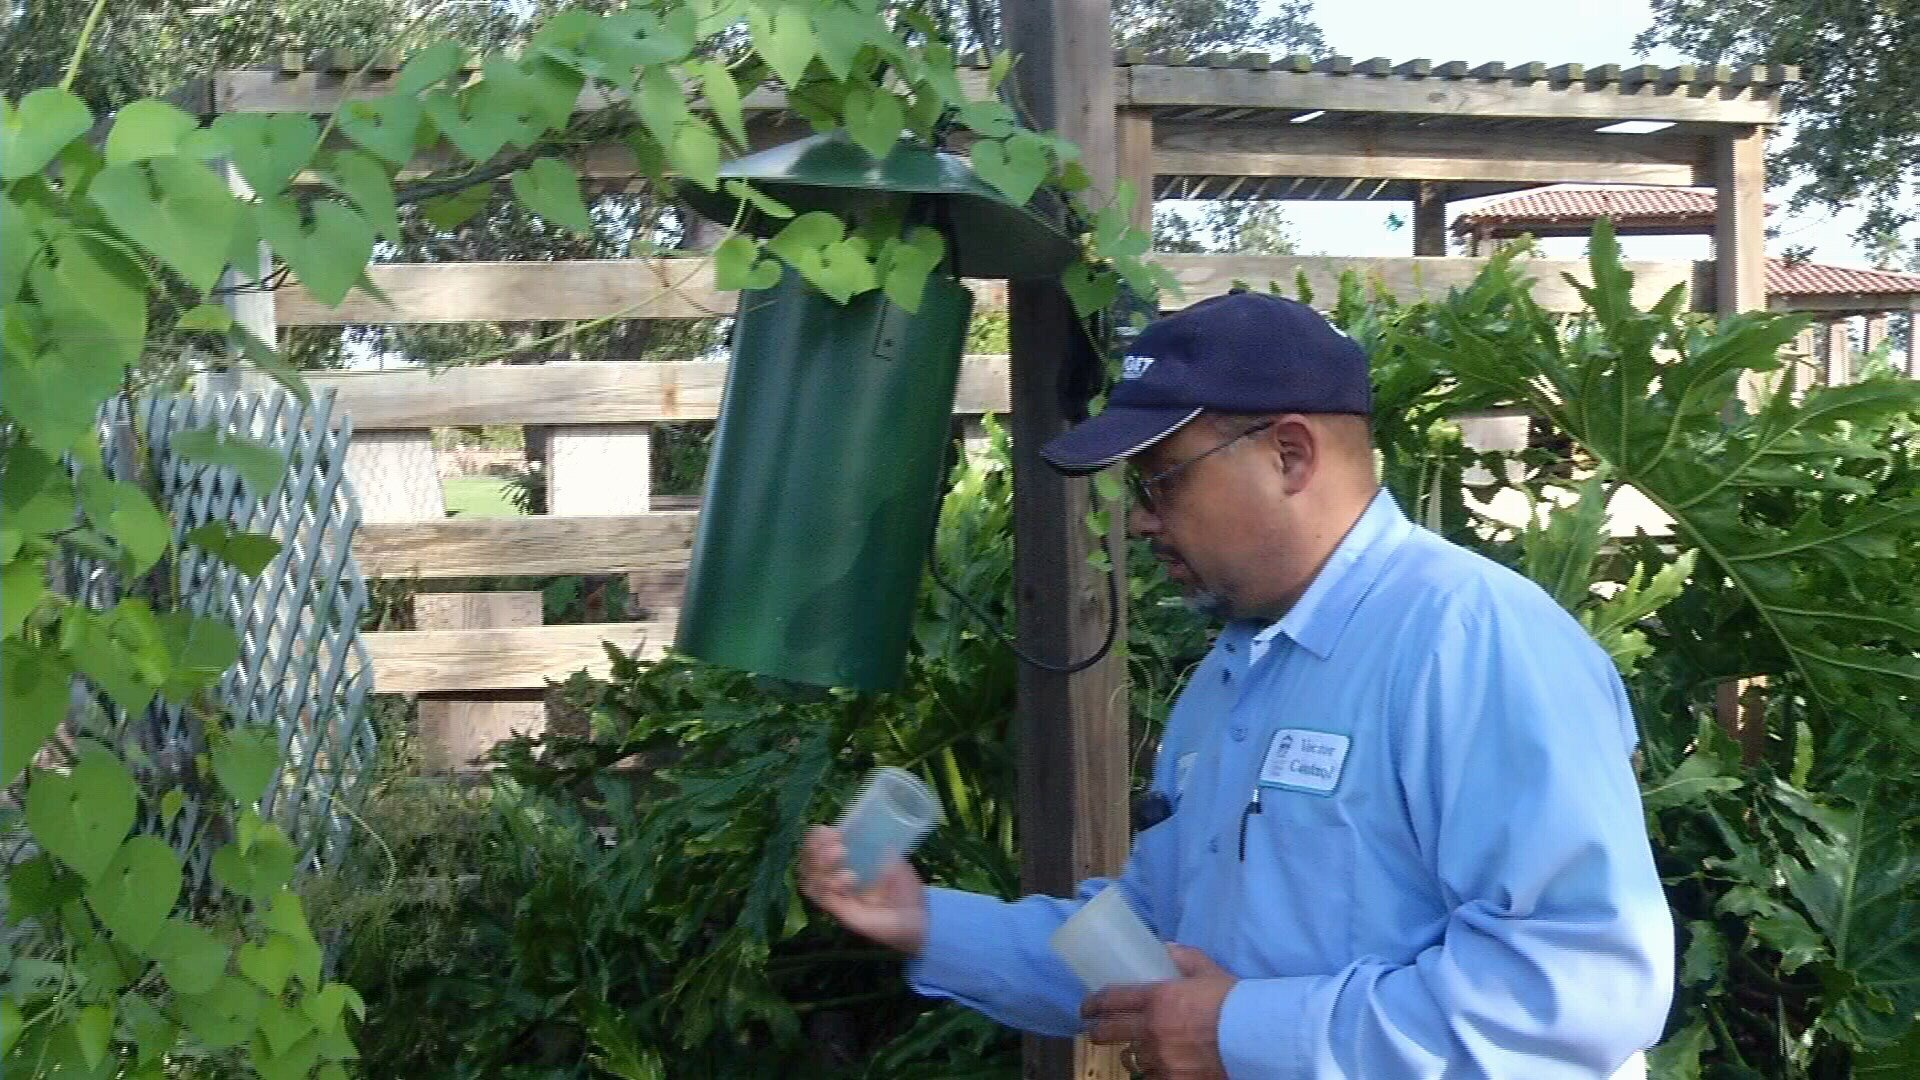 Vector Control officers also replaced the canisters in the New Jersey Light traps.